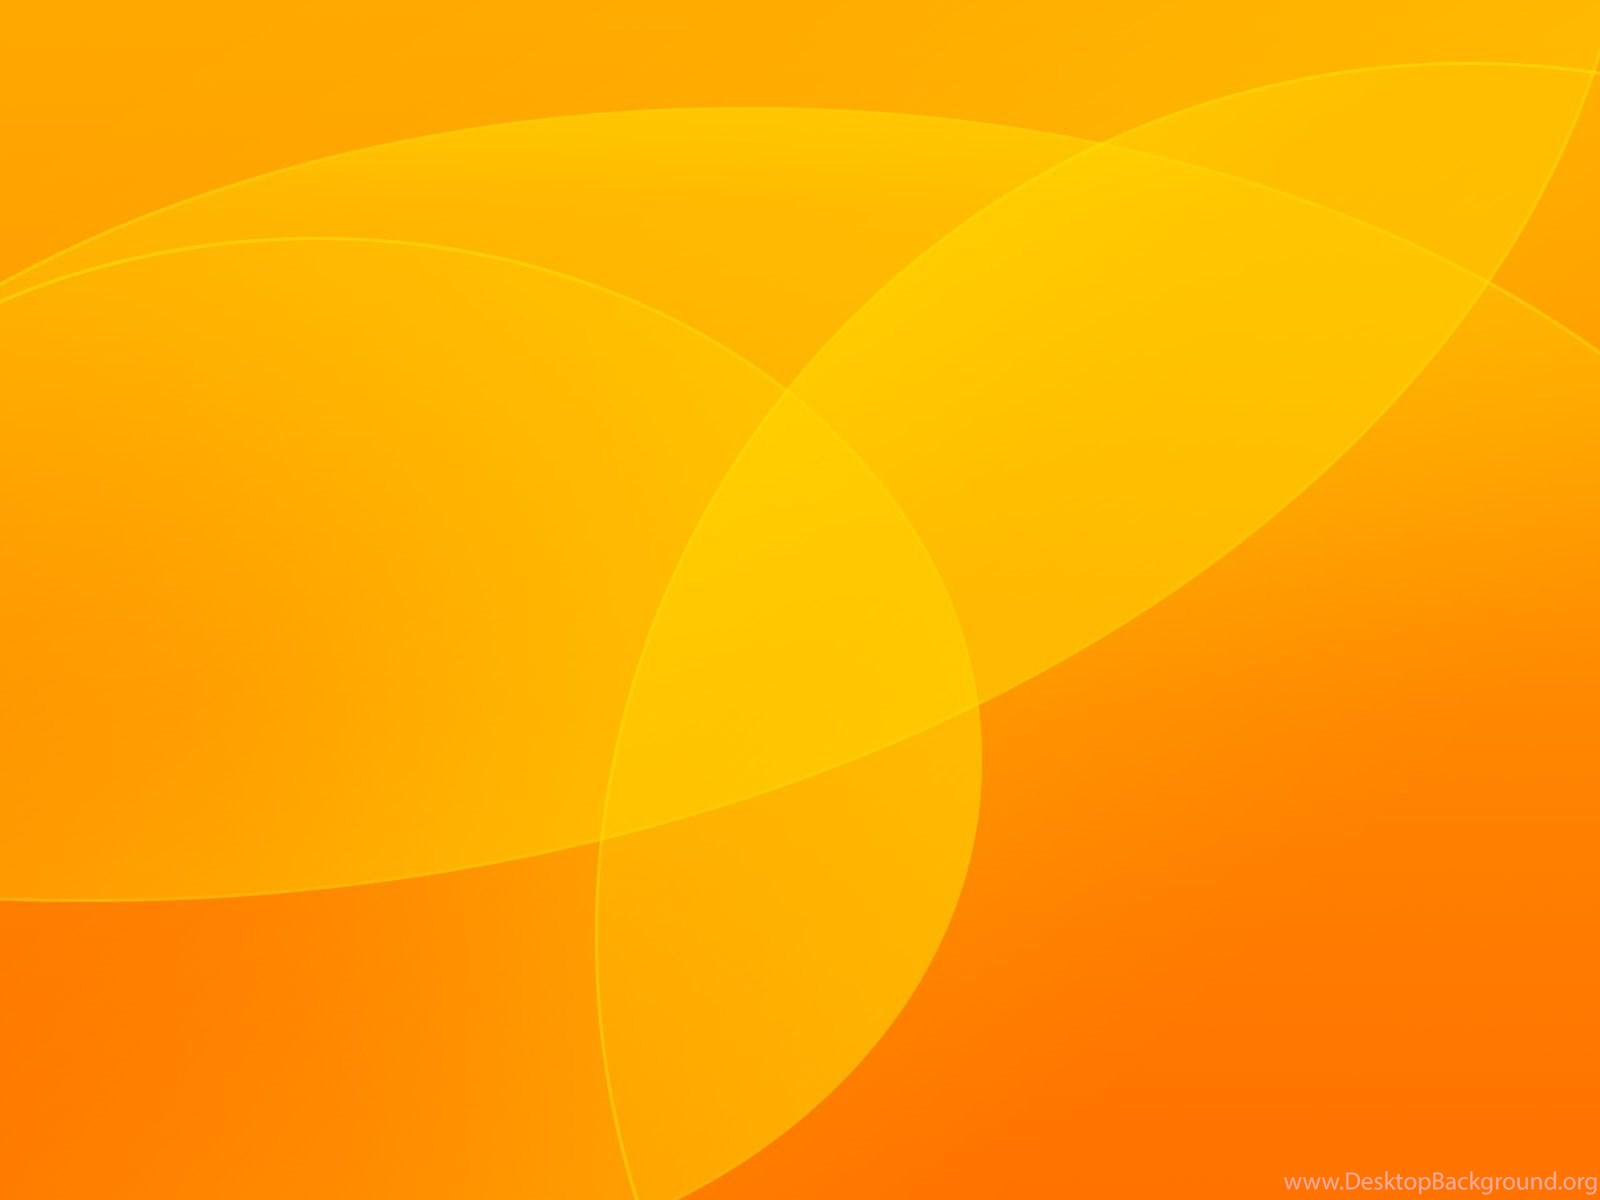 Solid Orange Wallpapers 174022 Desktop Background